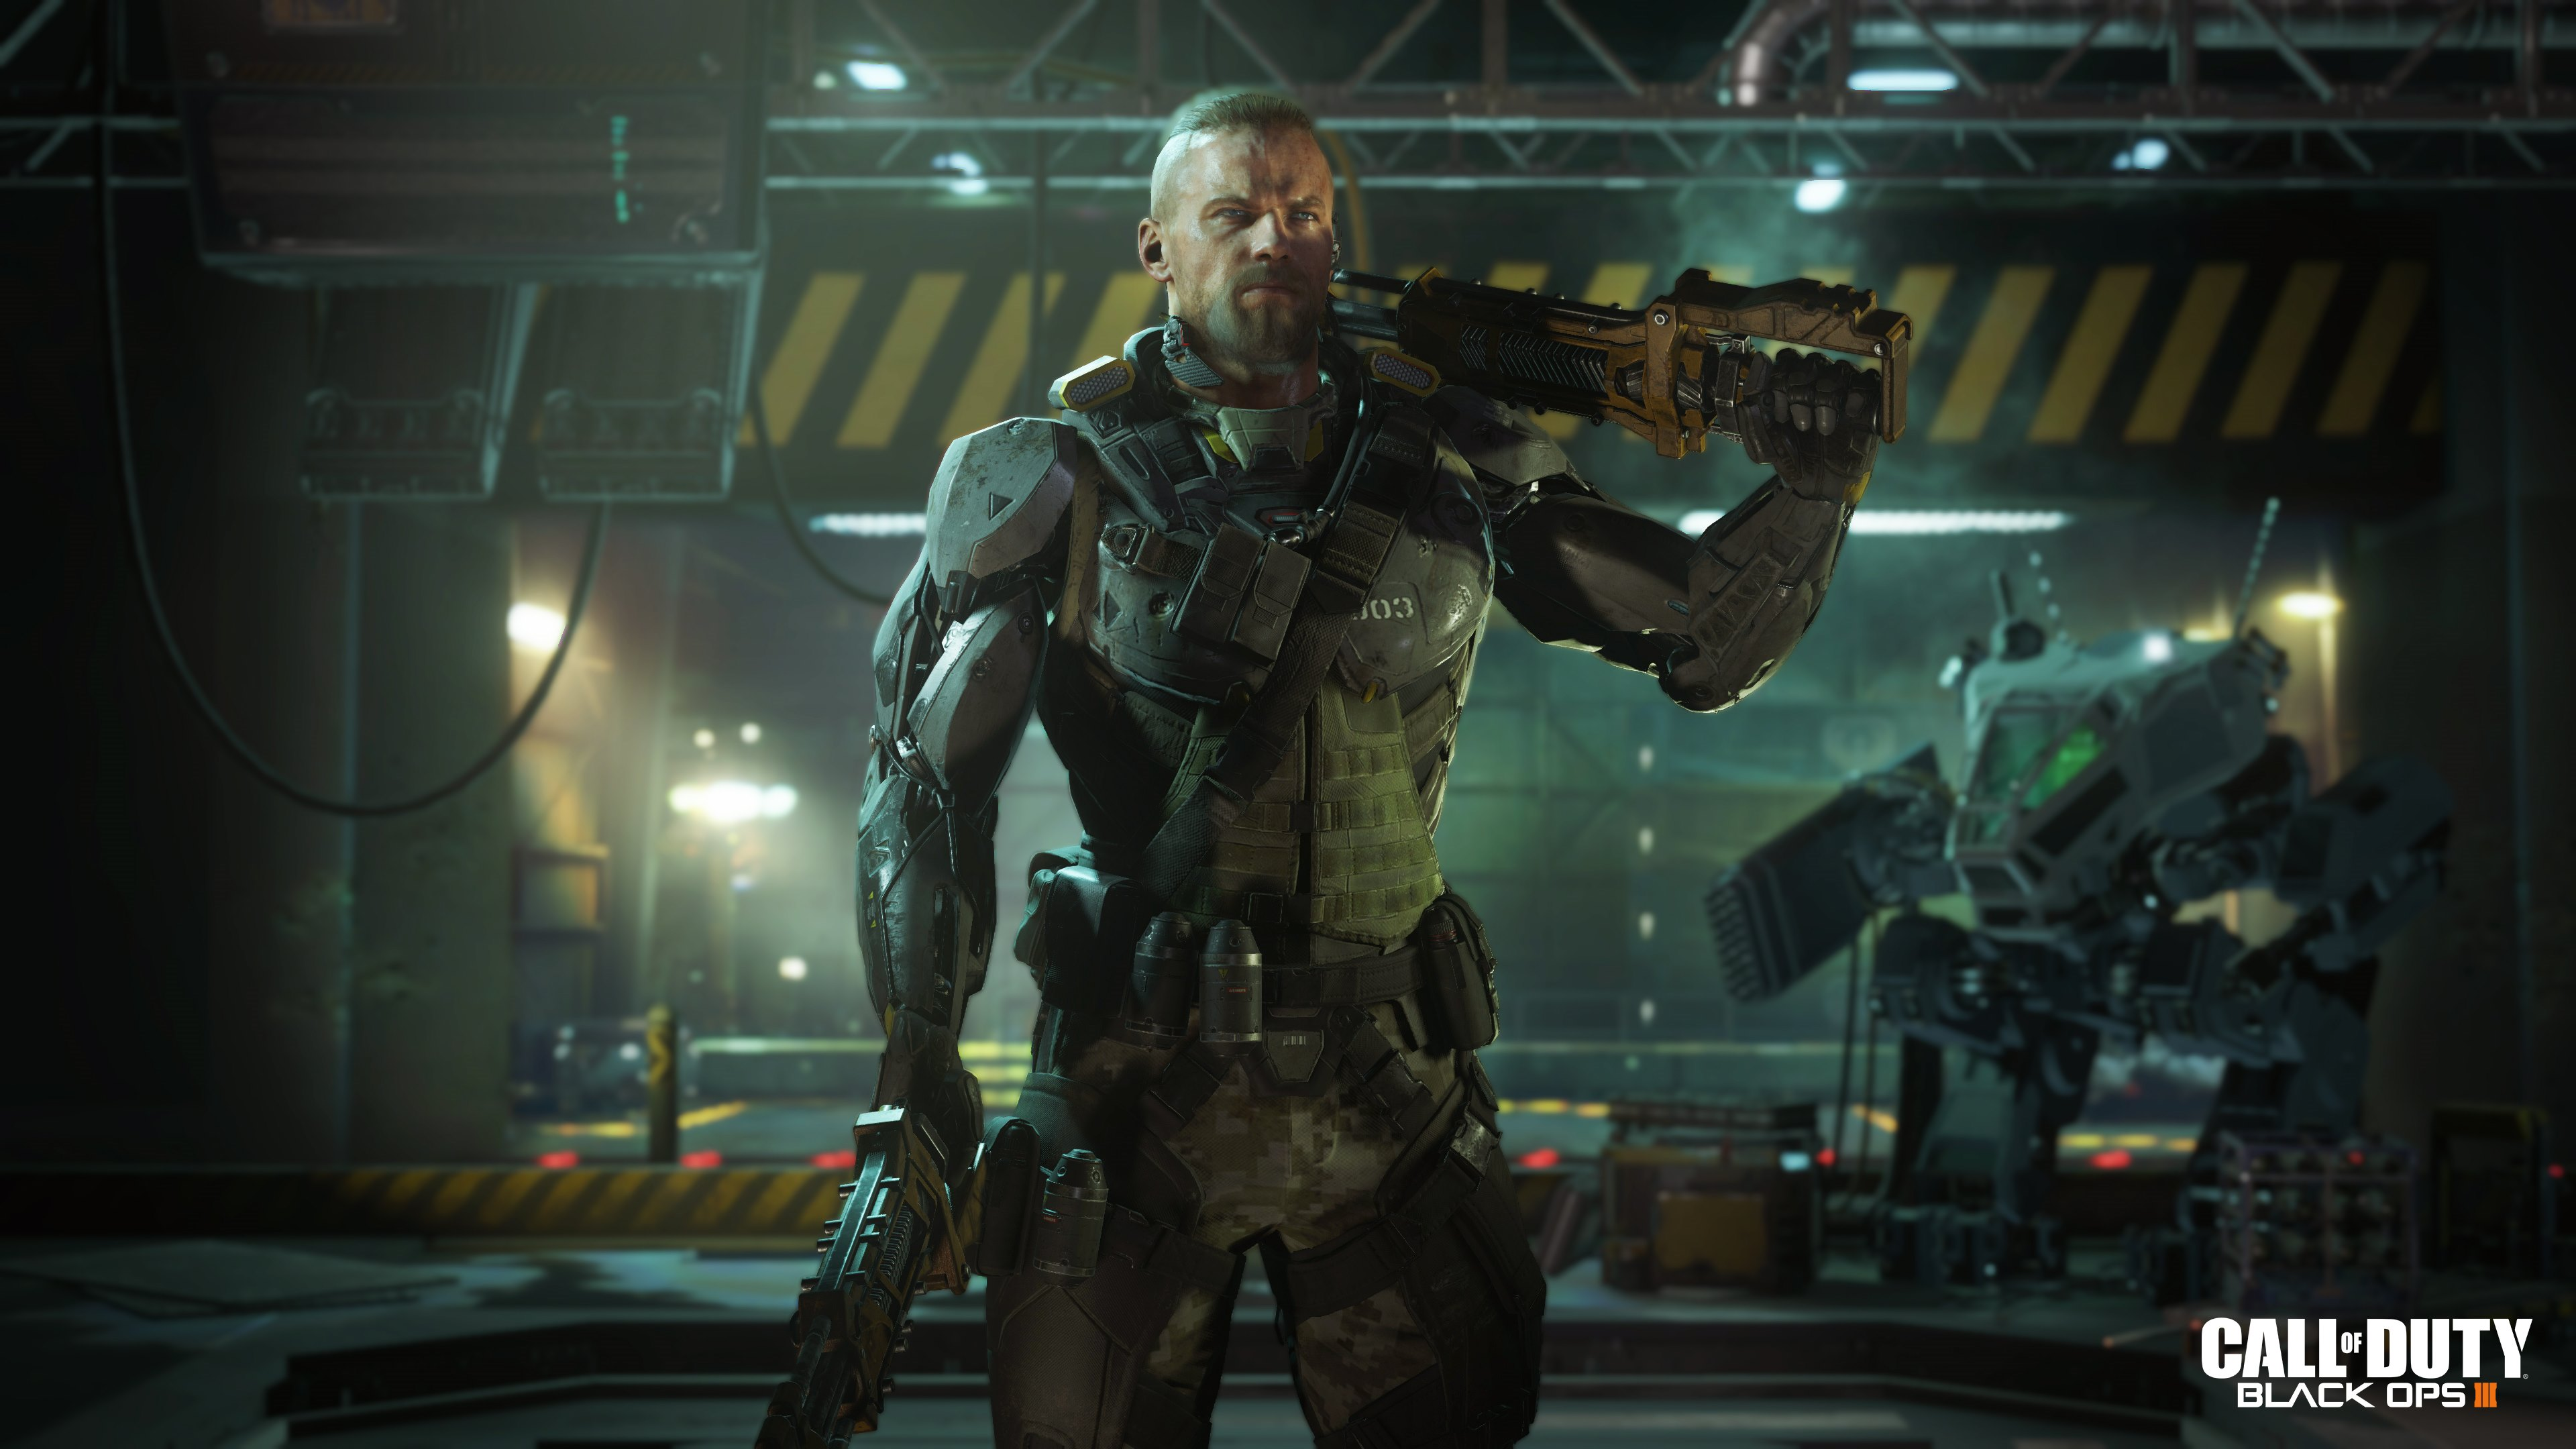 Hd Call Of Duty Black Ops Iii Wallpaper Full Hd Pictures